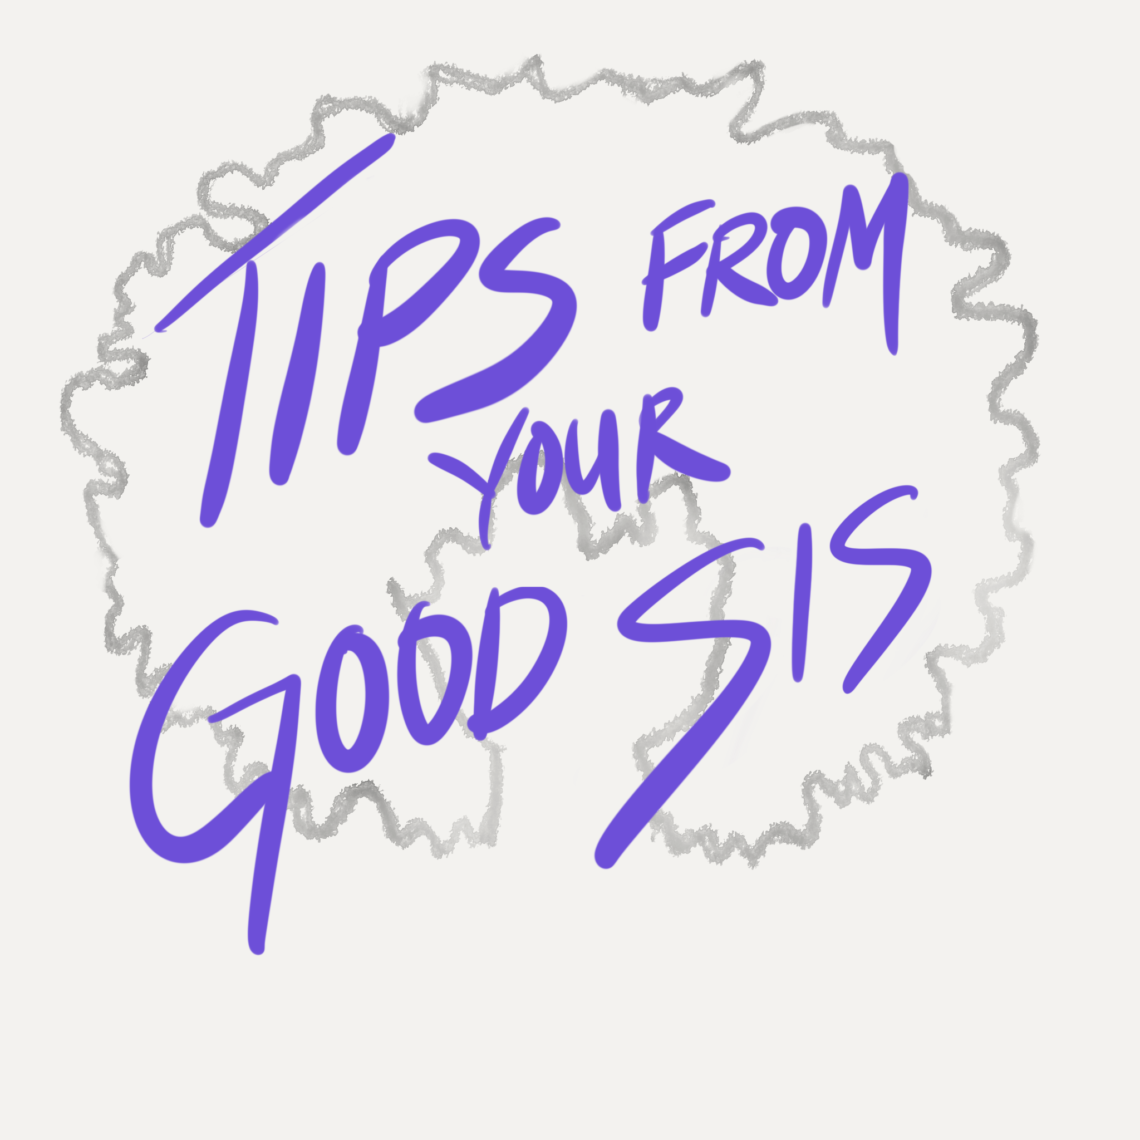 Tips From Your Good Sis Newsletter Subscription Sign Up Cover Image